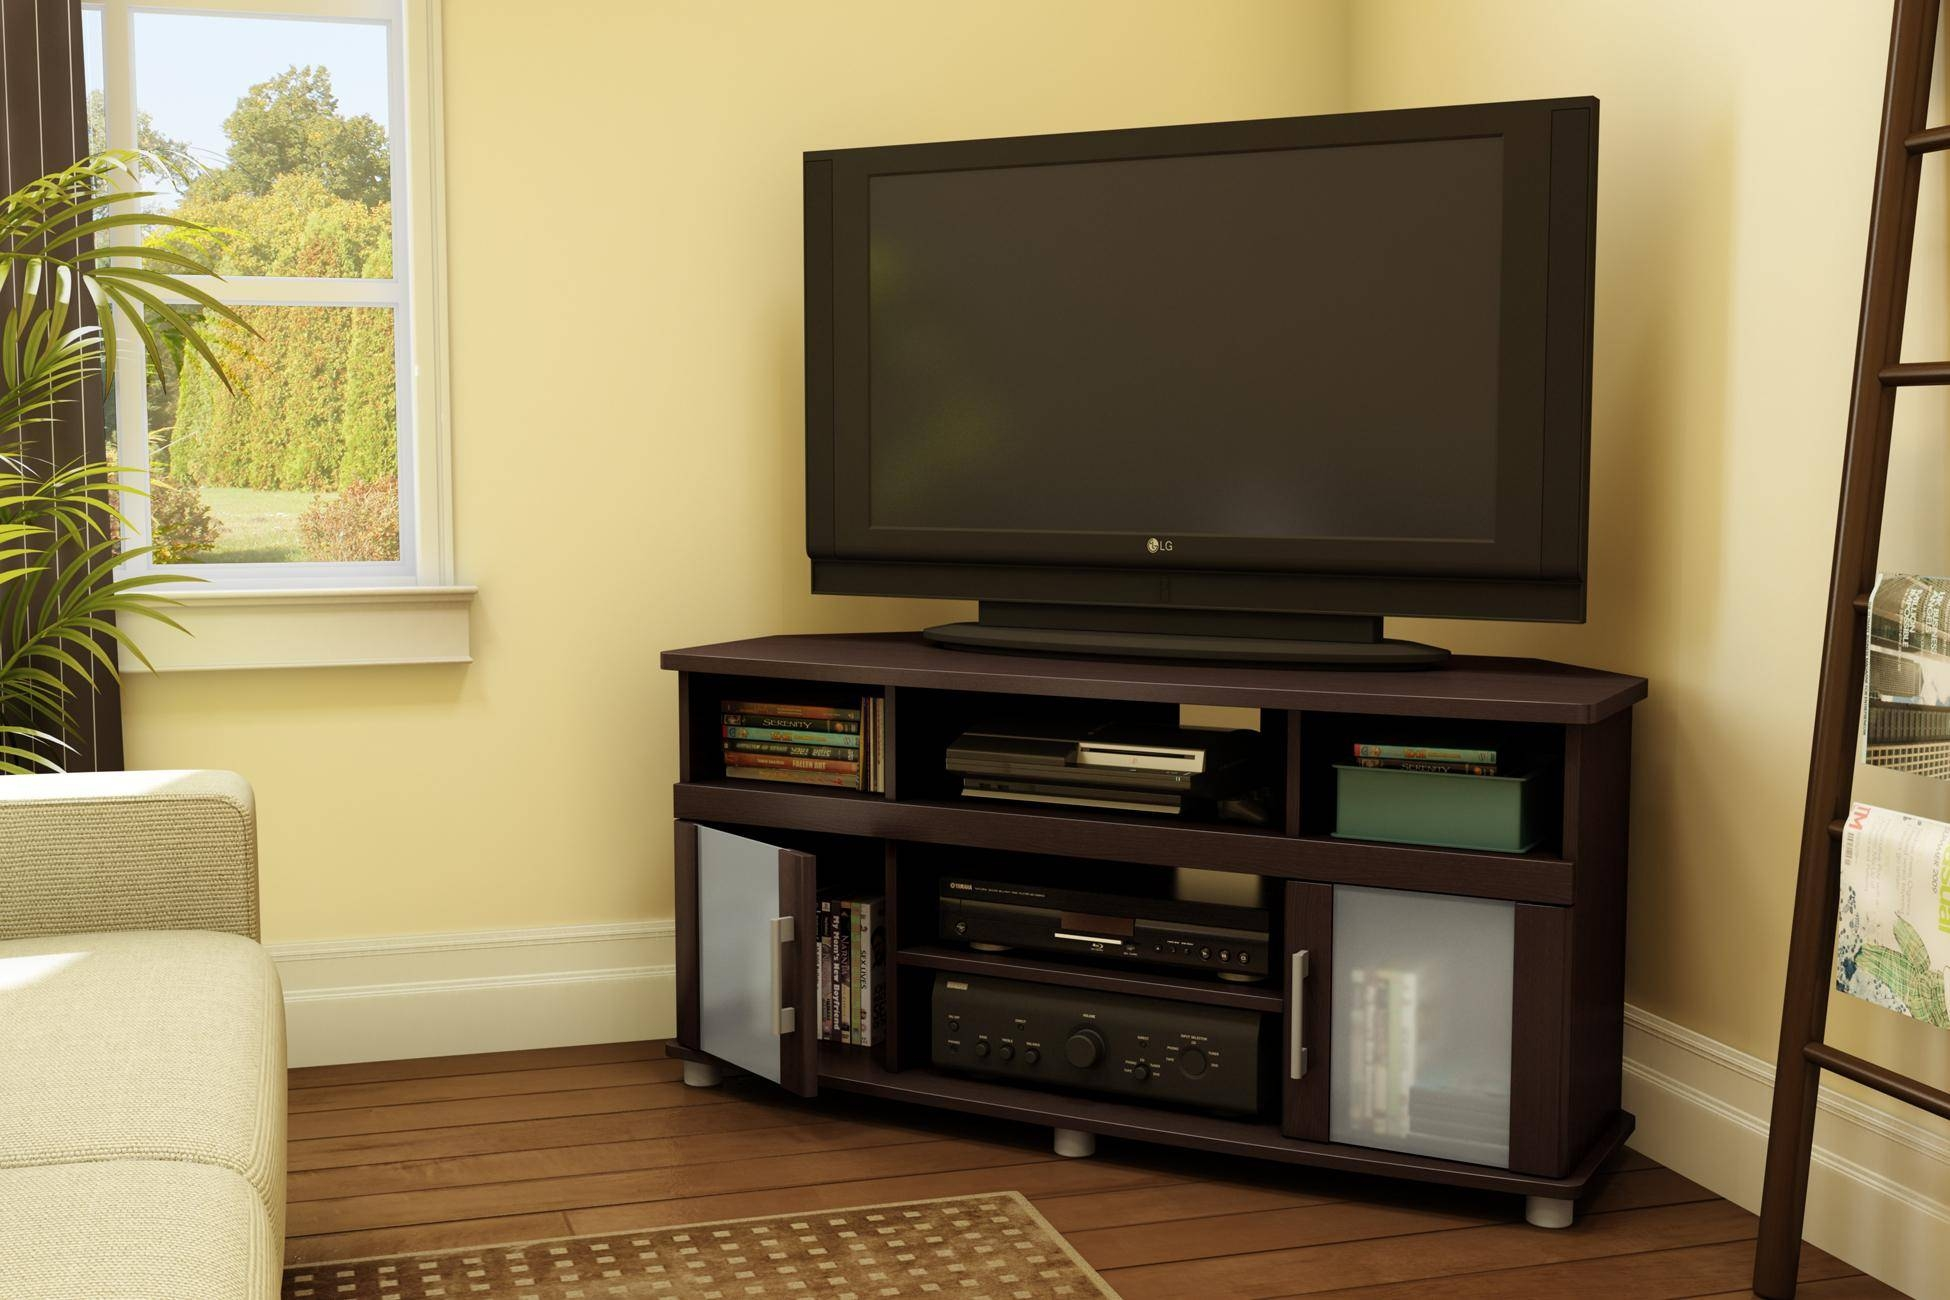 Best Tv Stands For Large Tvs | Home Decor Ideas with regard to Tv Stands for Large Tvs (Image 1 of 15)